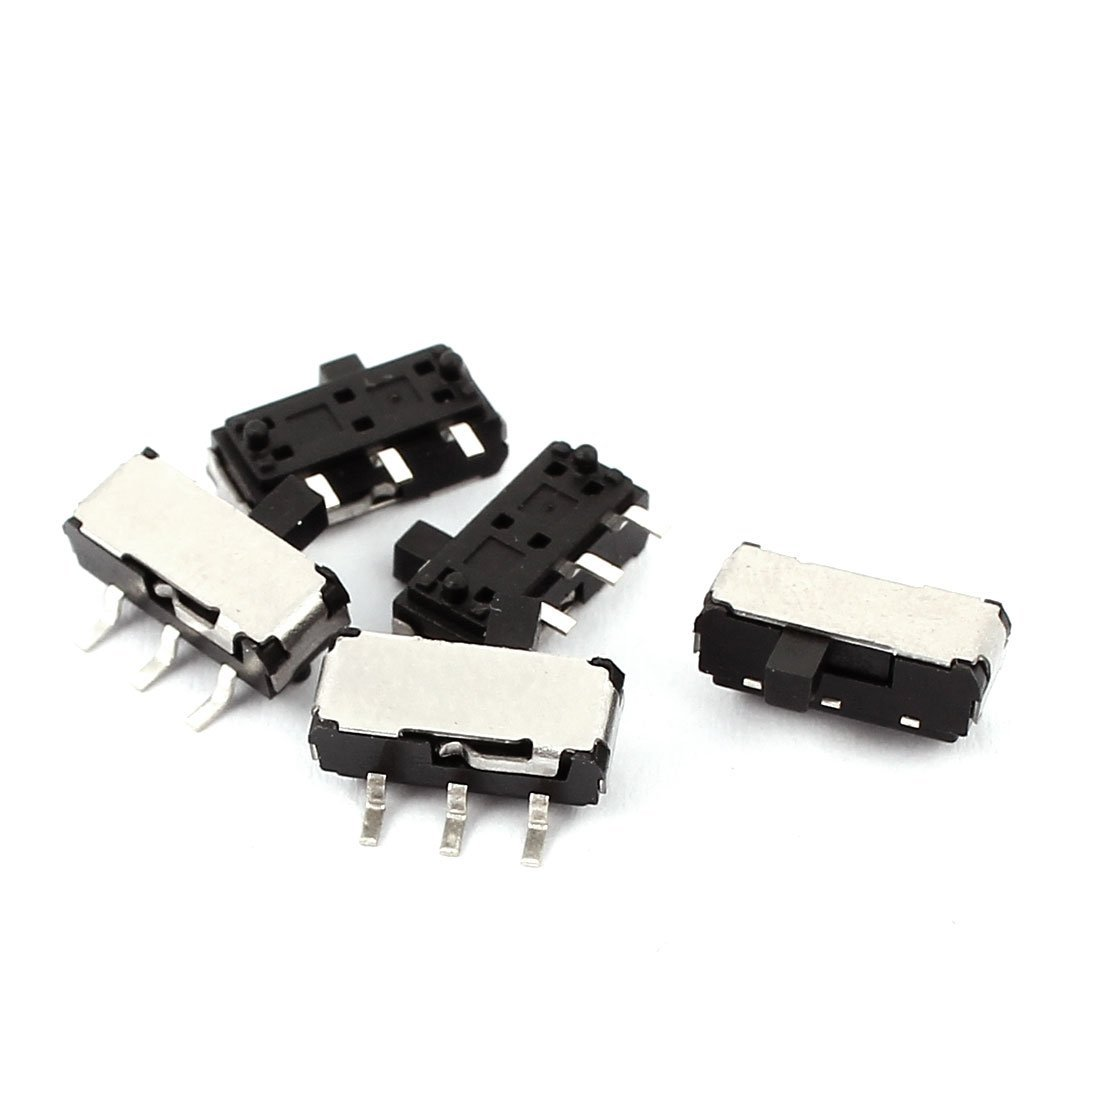 uxcell 5 Pcs 2 Position Straight 3P SPDT Micro Slide Switch Latching Toggle Switch Black